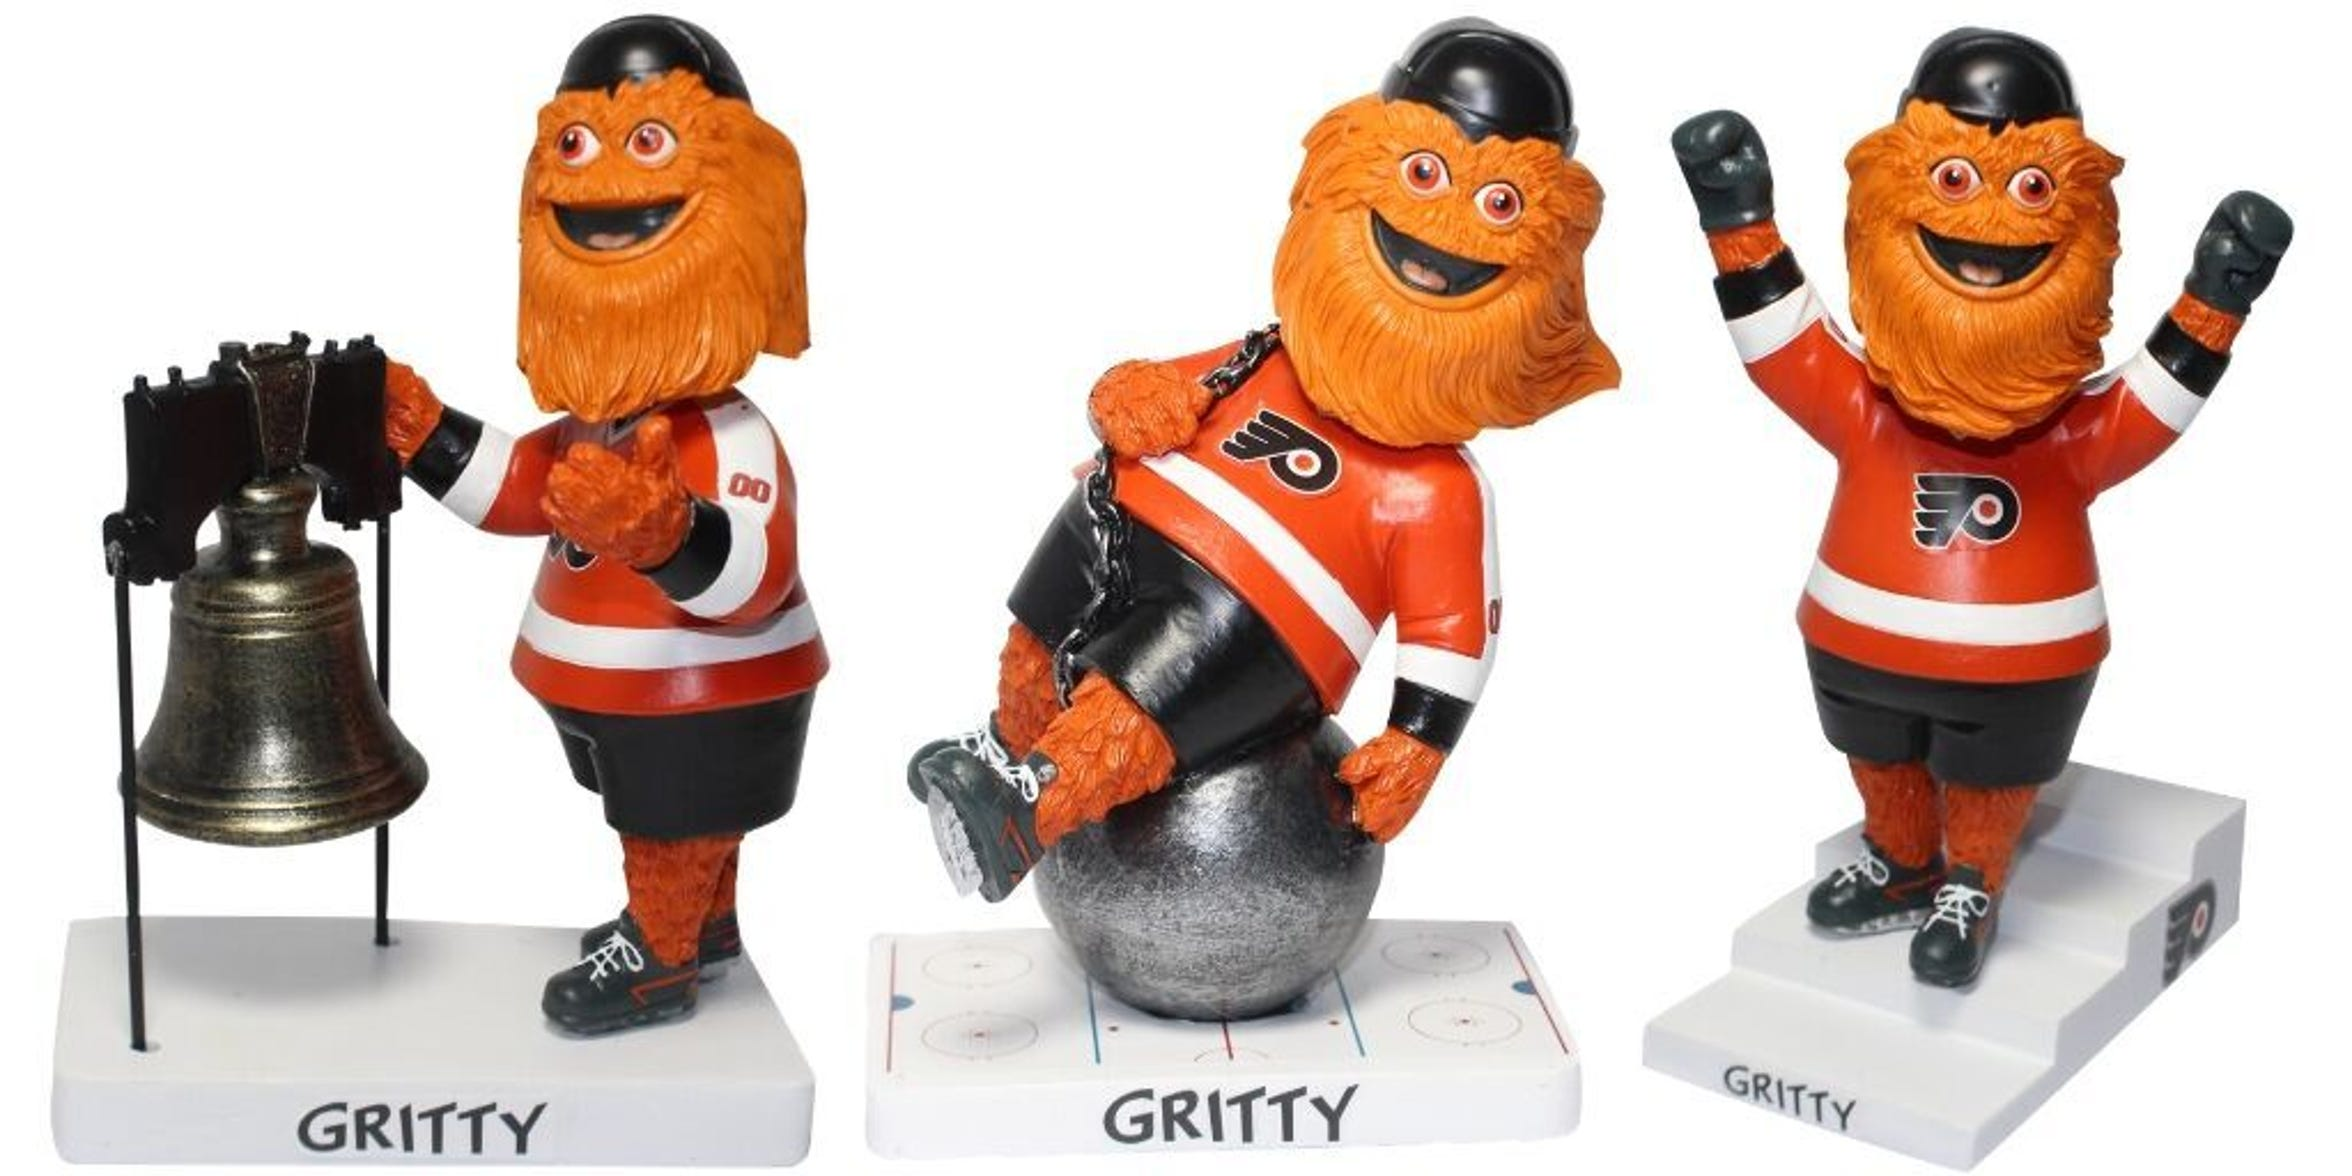 National Bobblehead Hall of Fame has released its officially-licensed special edition Gritty bobbleheads.